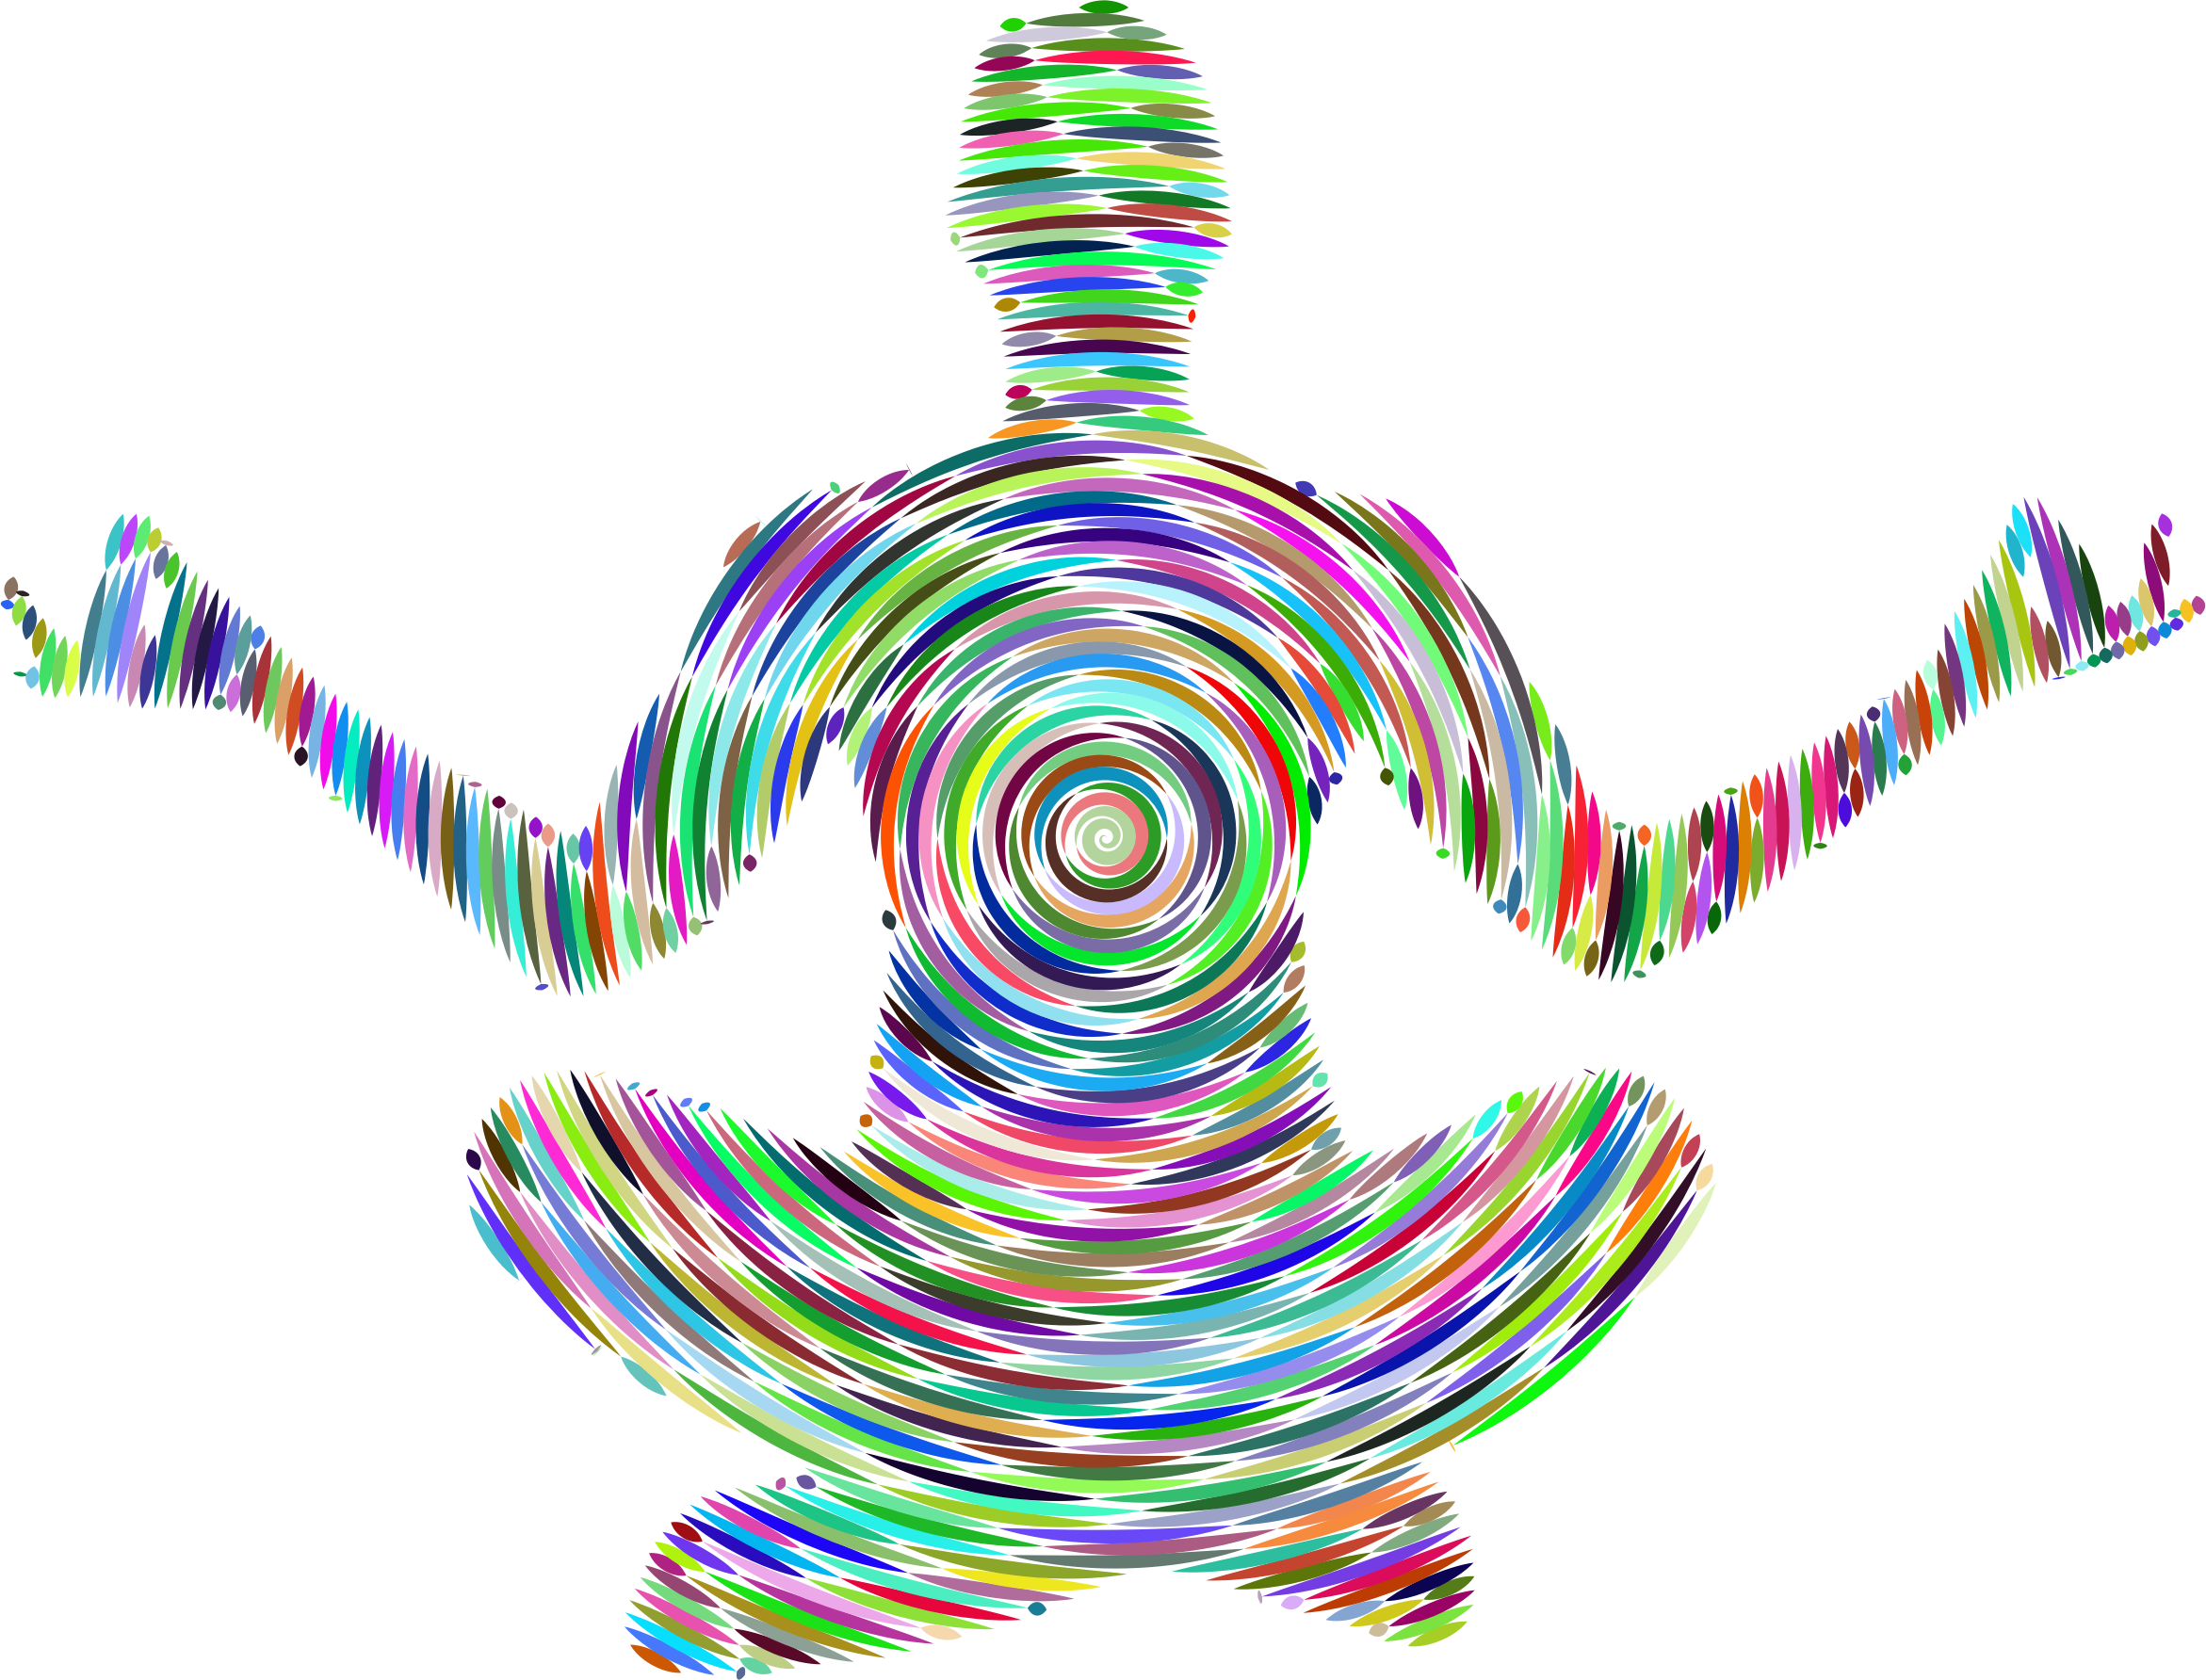 Prismatic Female Yoga Pose Silhouette 14 Concentric by GDJ